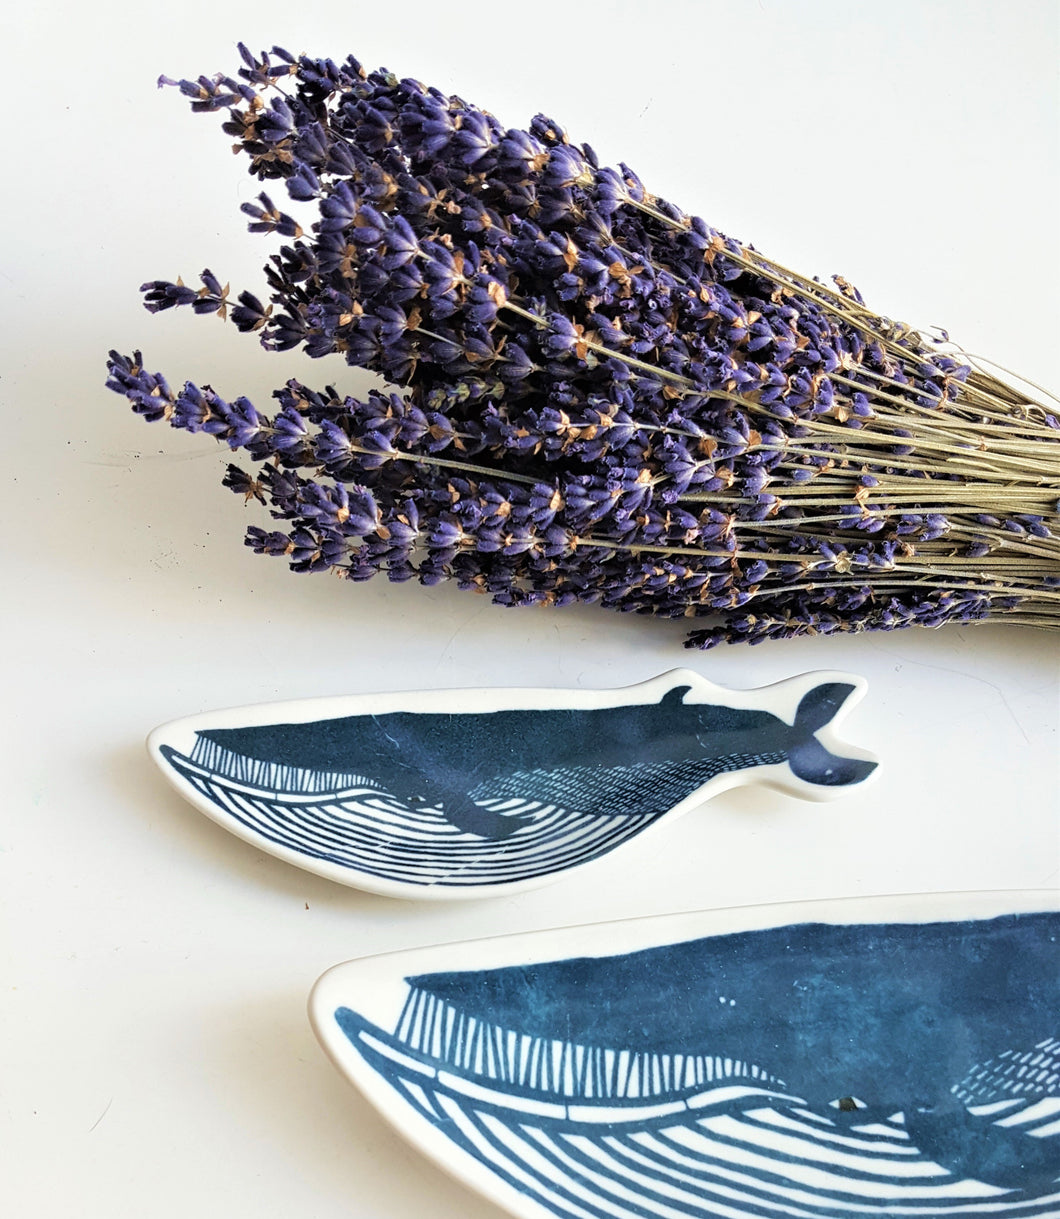 Classiky 倉敷意匠 - Whale Ceramic Dish - Happiness Idea